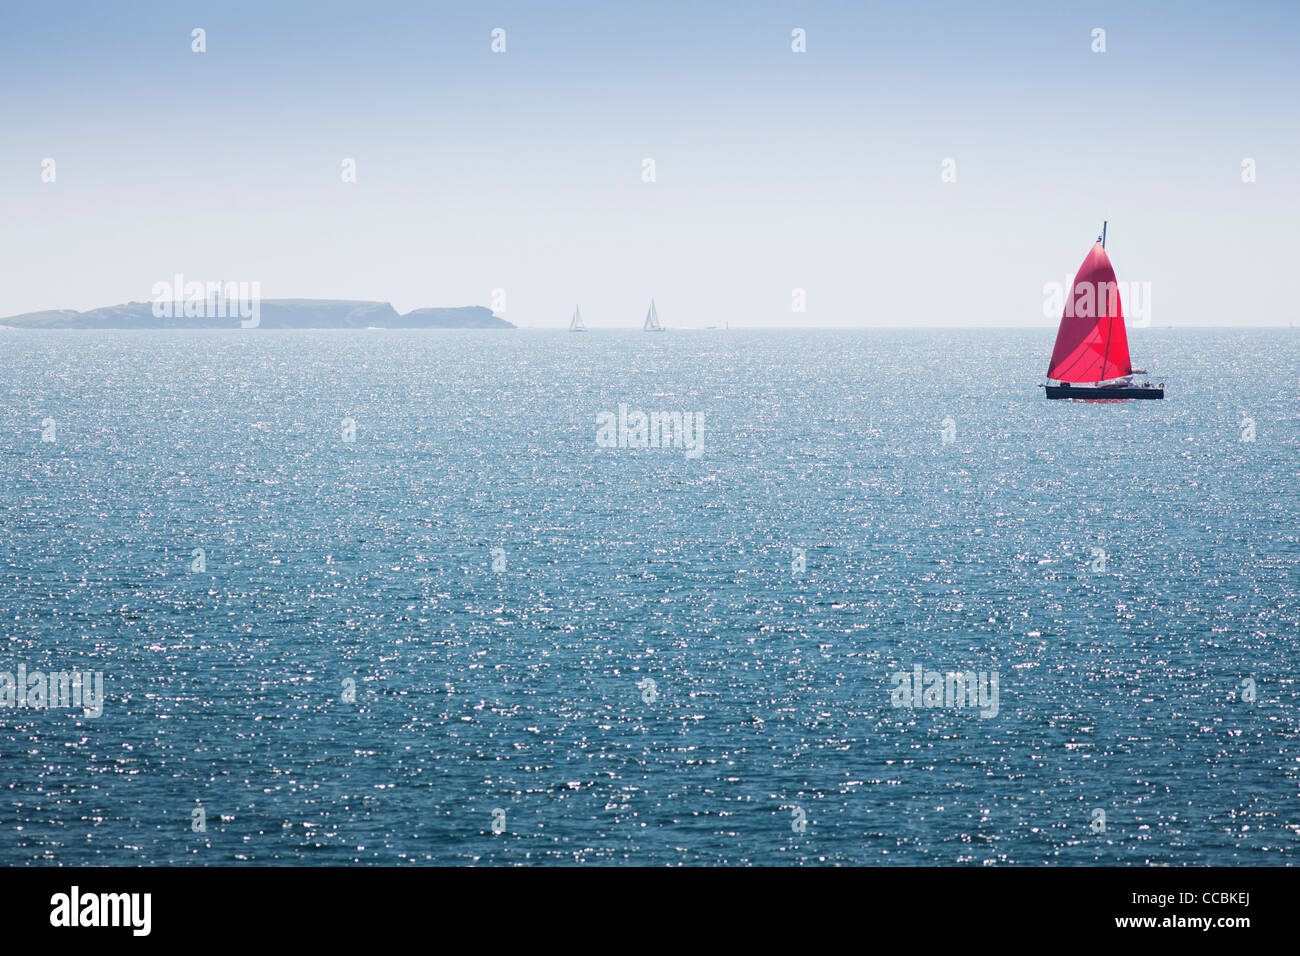 Sailboat off the coast of Belle-Ile-en-Mer, Morbihan, Brittany, France - Stock Image